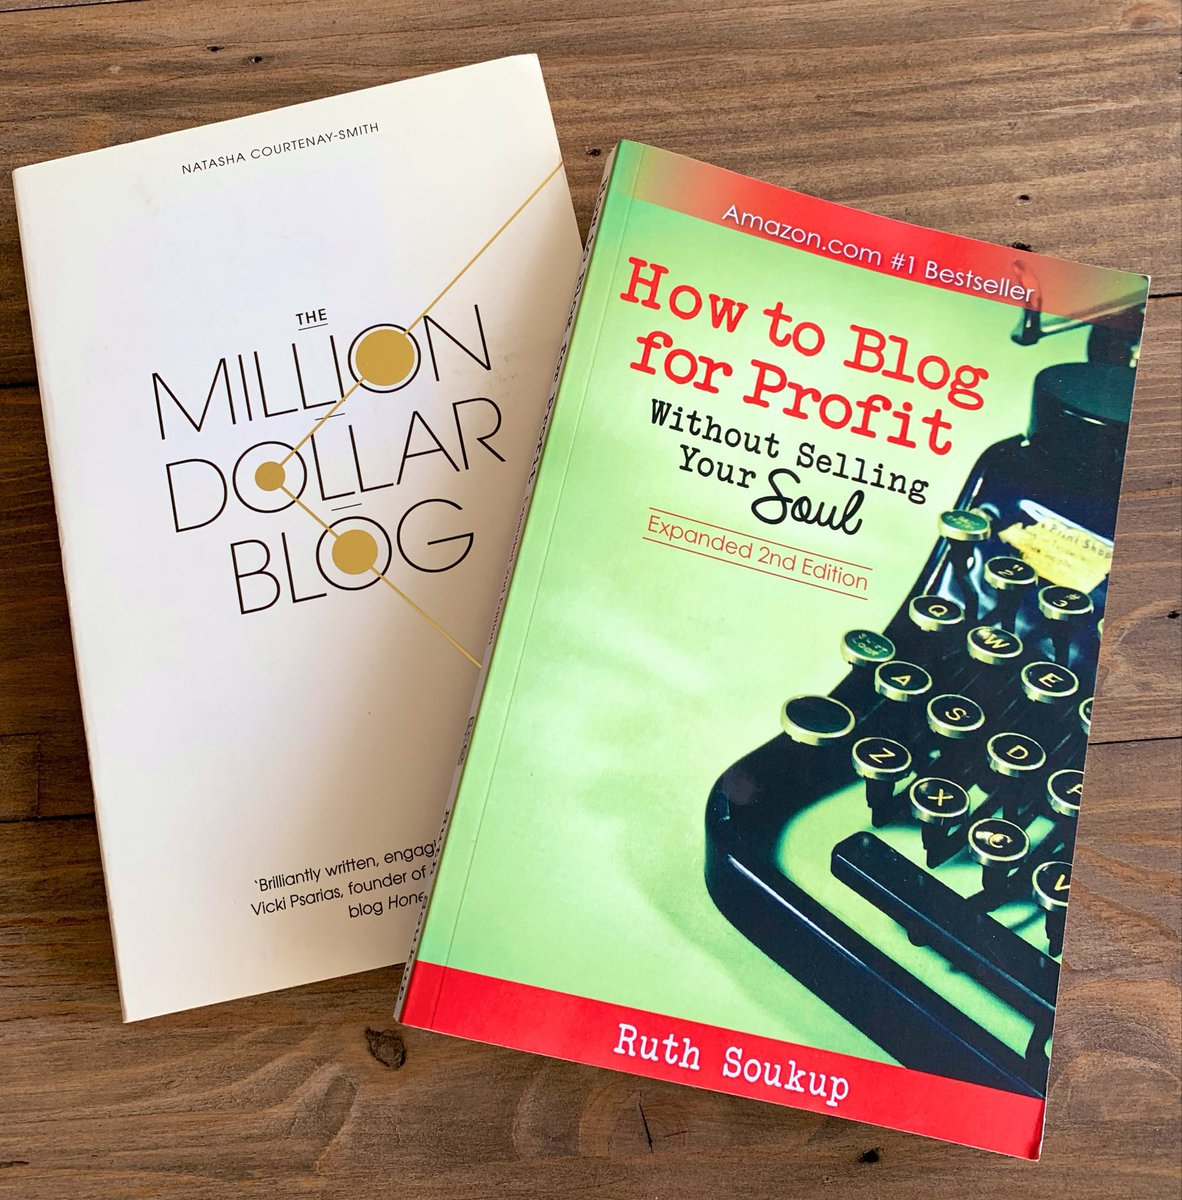 There's still time to #enter our #giveaway! To #win these two books  on #blogging, both helped me when I first became a #blogger. Simply #follow @Sostraveluk & #retweet this post. Ends Monday 22/7, best of luck  #Competition #prizedraw #sostraveluk #tblogger #bloggercommunity<br>http://pic.twitter.com/xKG2qXSmEb